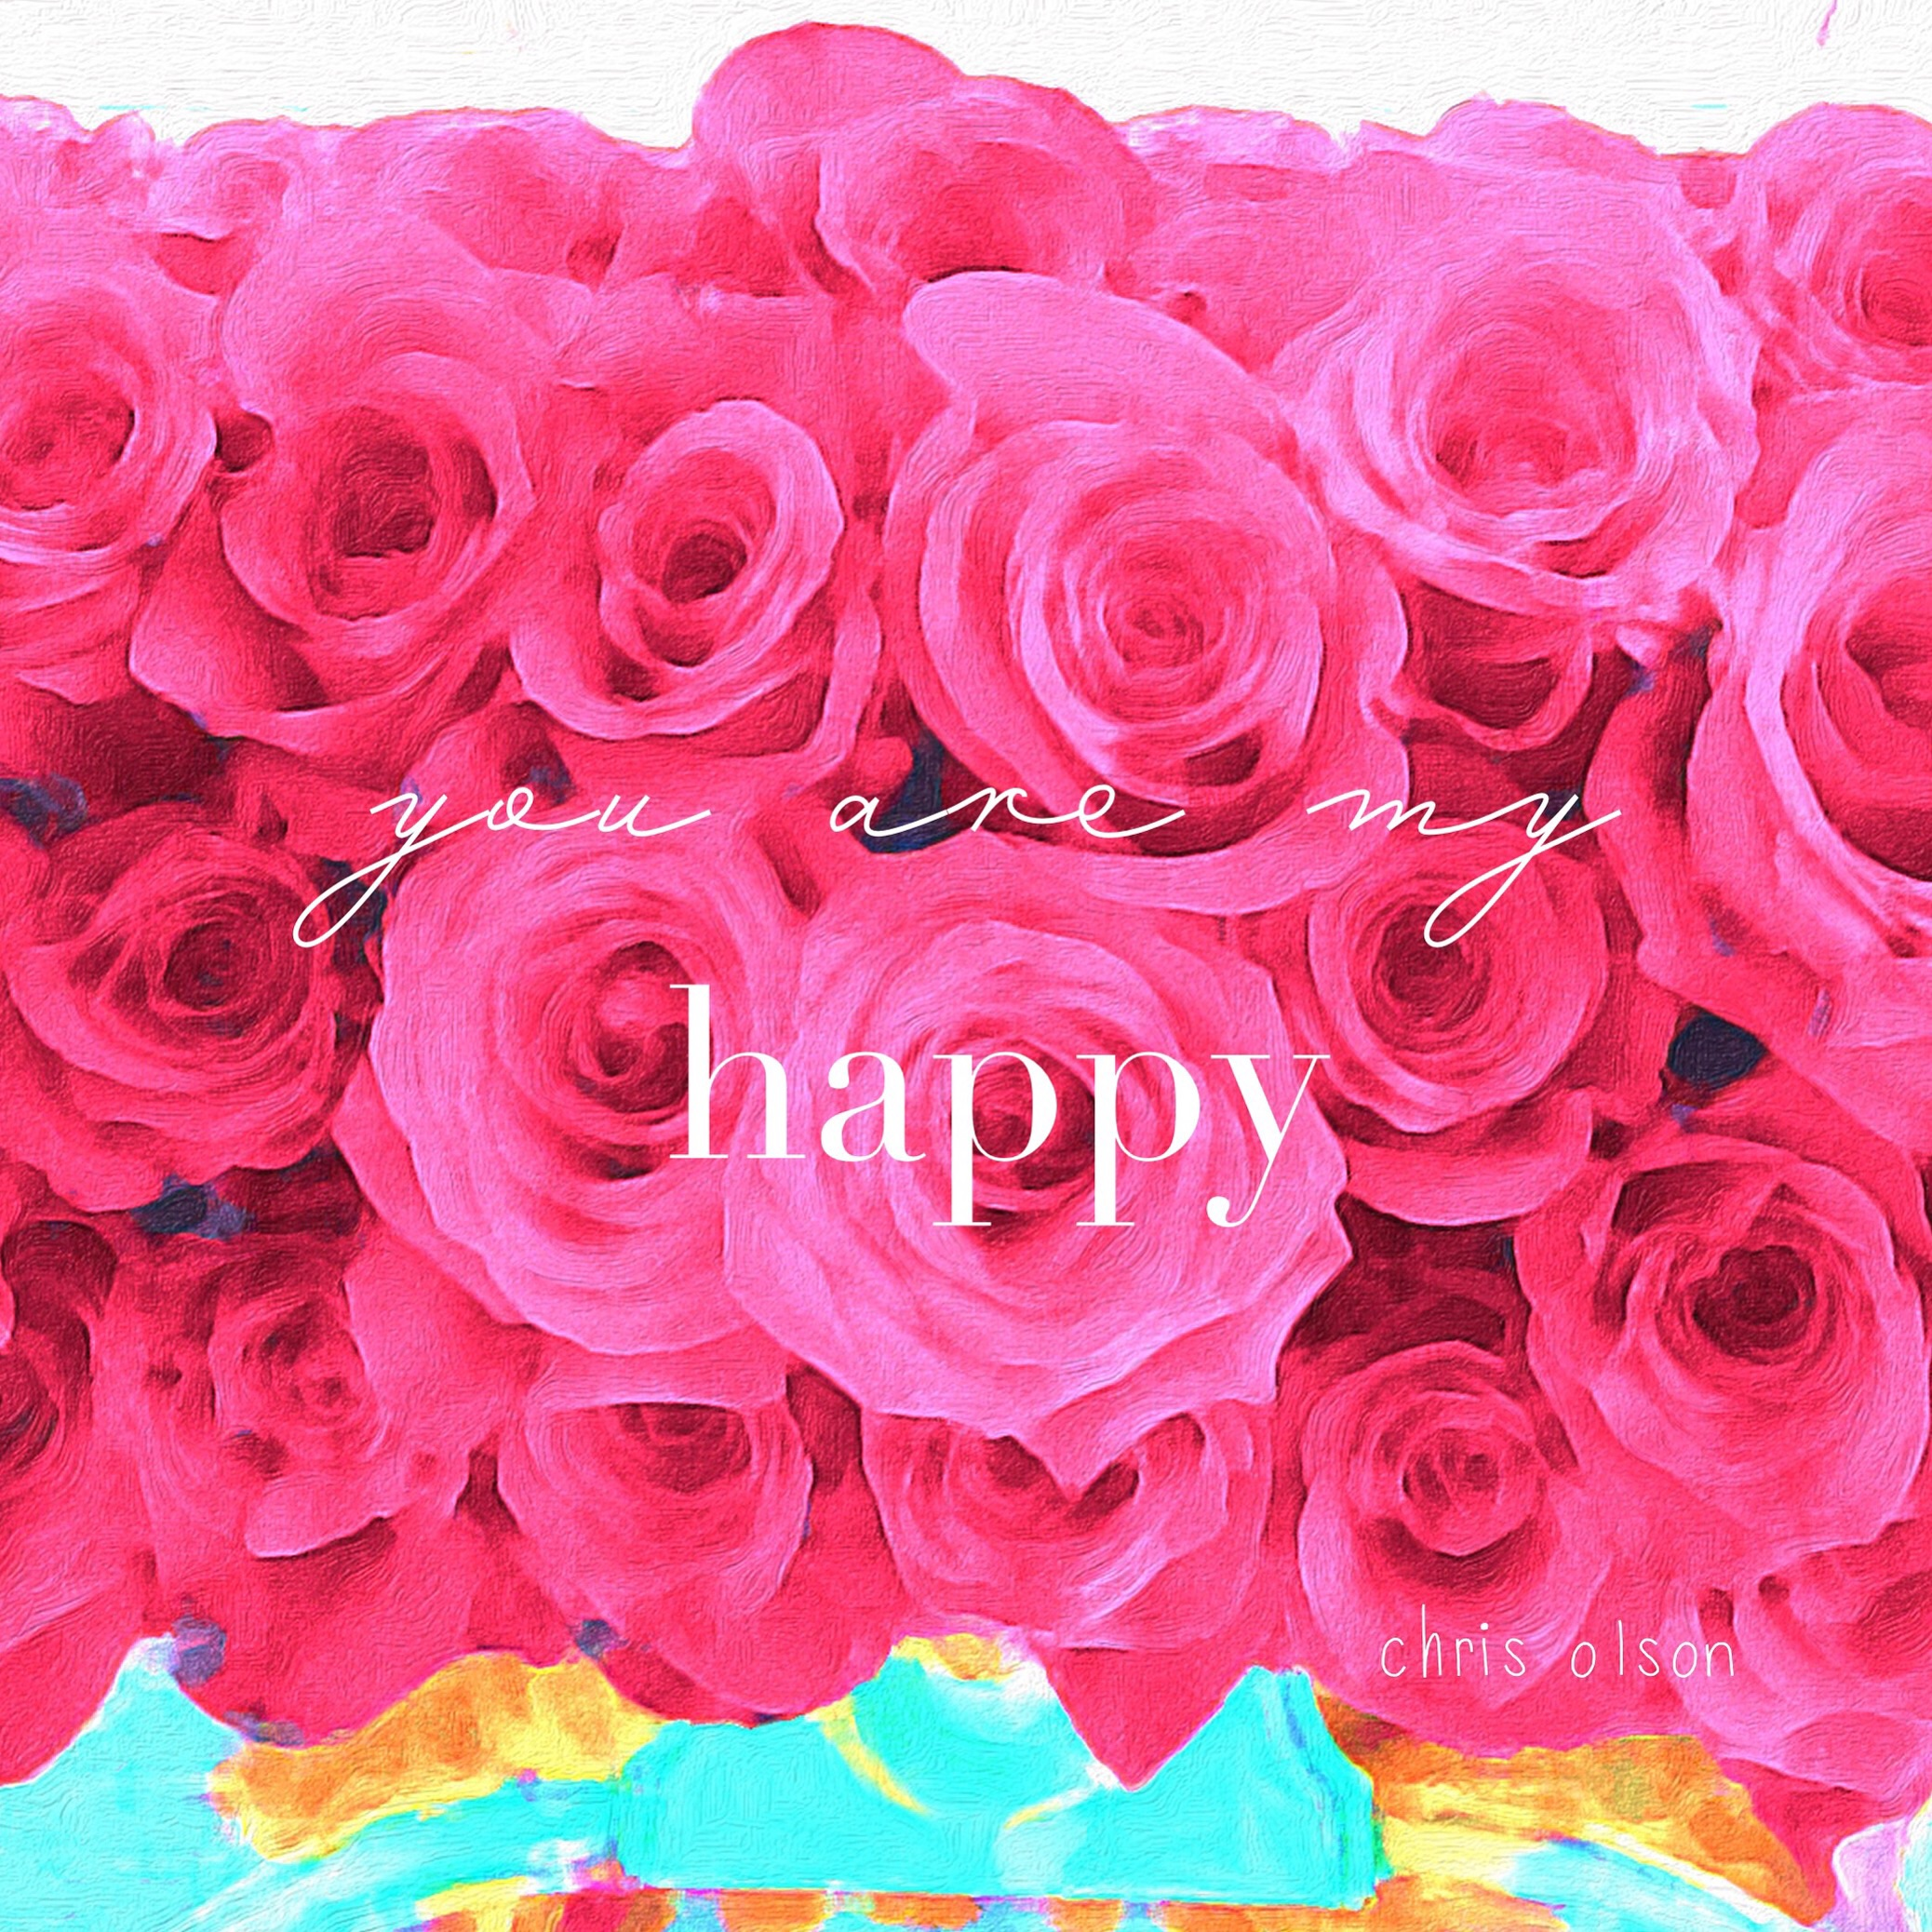 You are my happy!